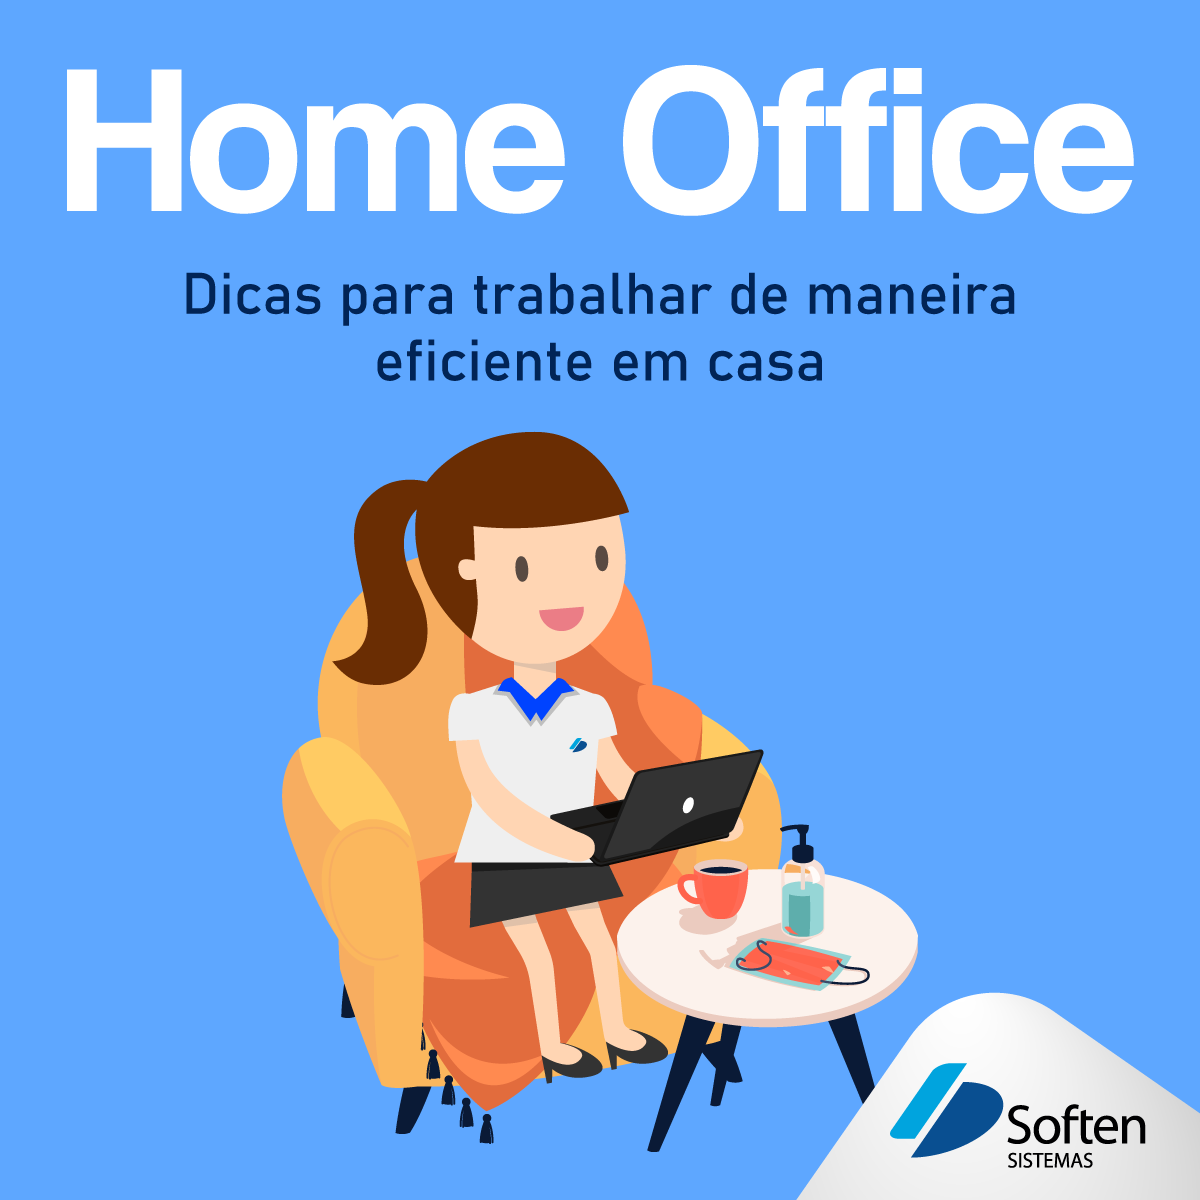 Home Office Soften Sistemas